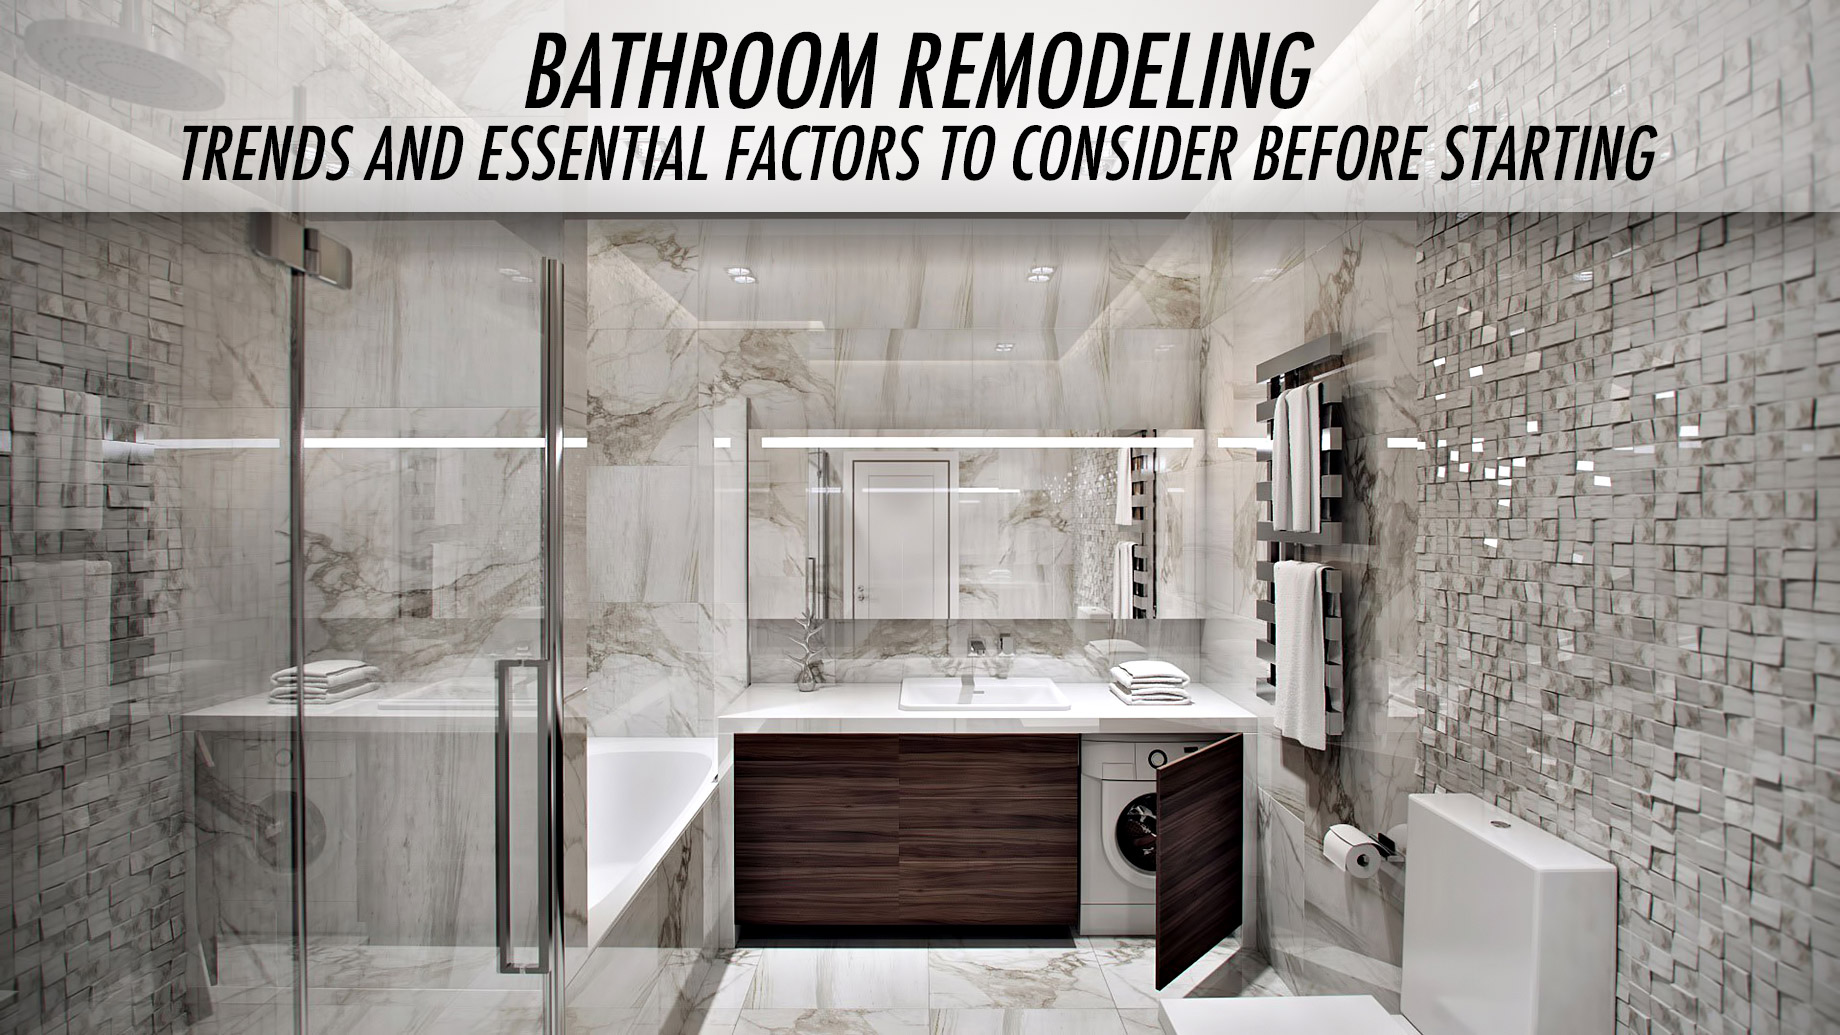 Bathroom Remodeling - Trends and Essential Factors to Consider Before Starting